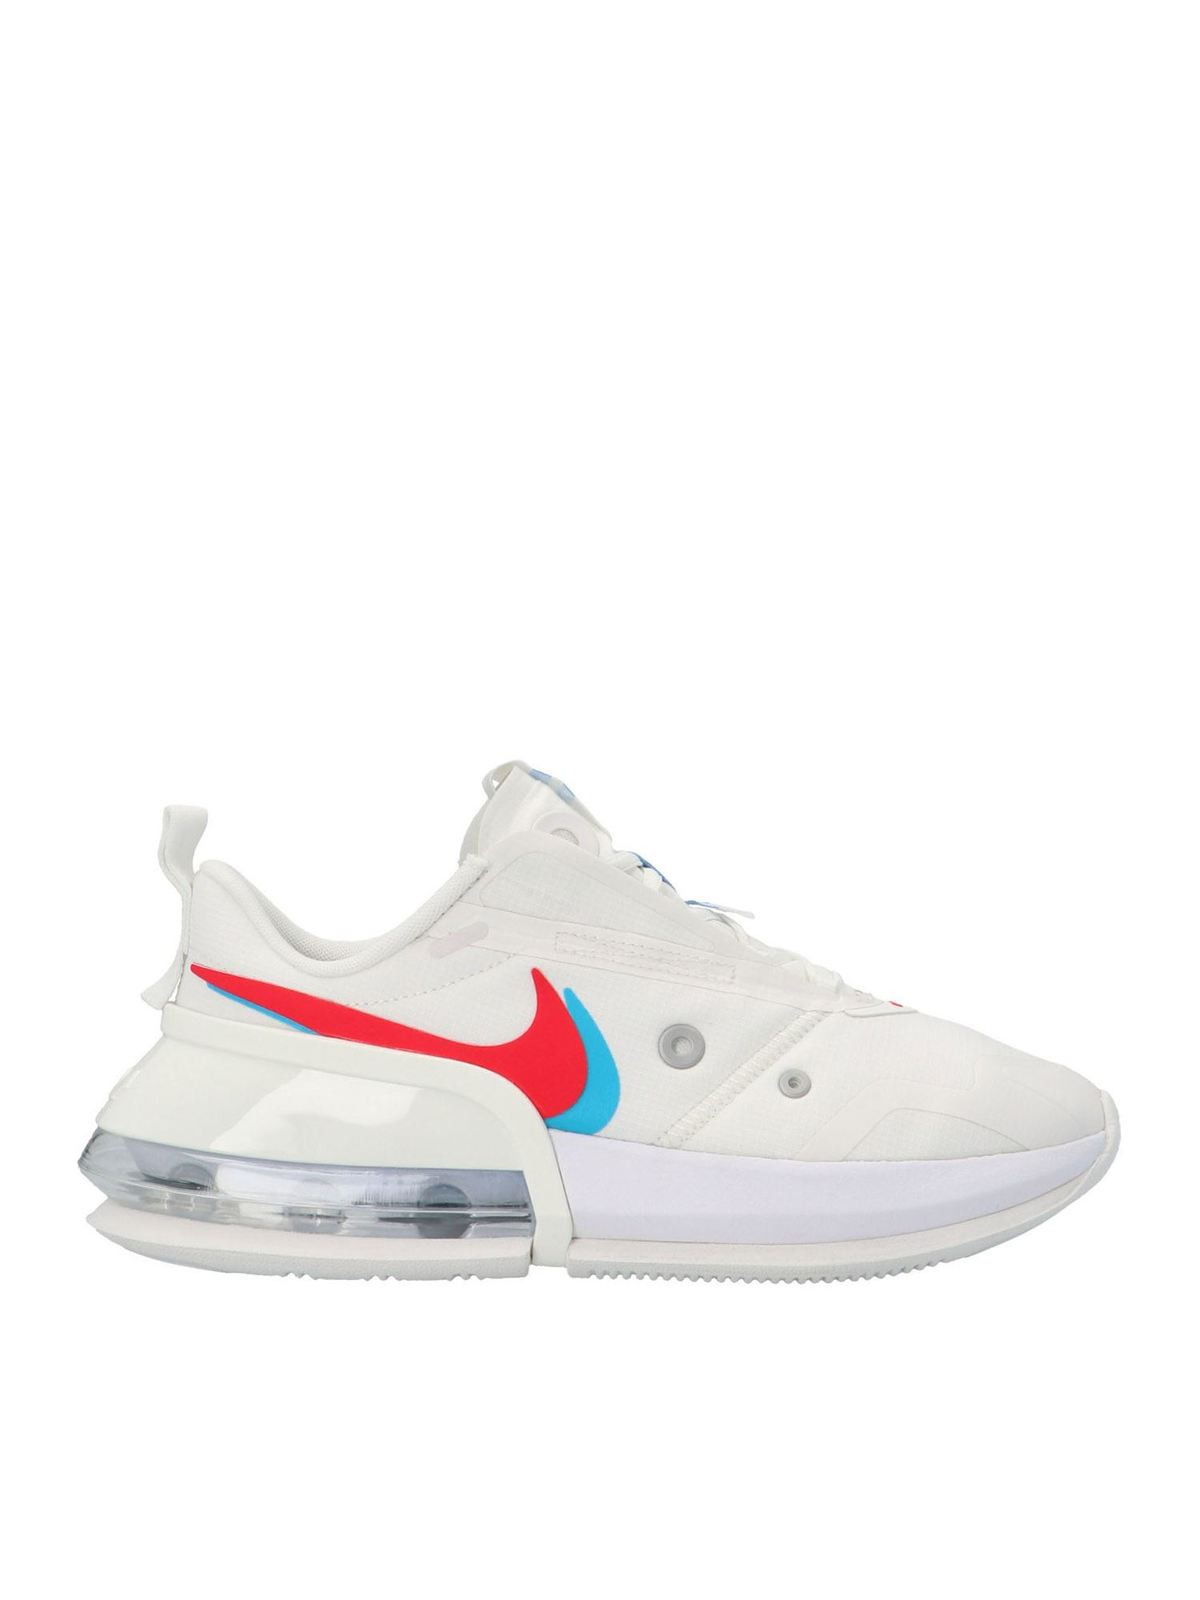 Nike Air Max Up Sneakers In White